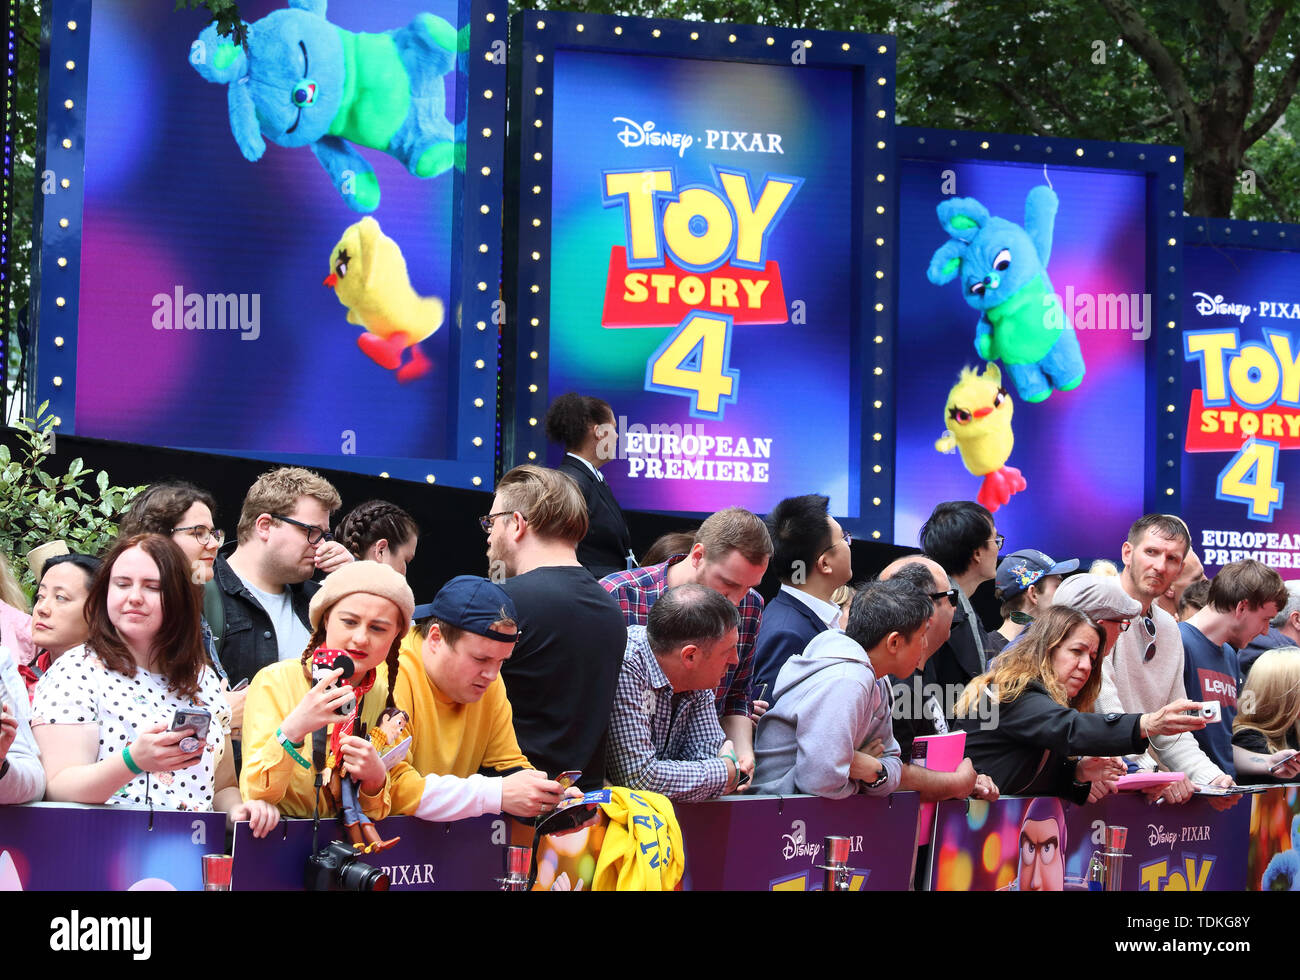 London, UK. 16th June, 2019. People attend the European Premiere of Toy Story 4 at Odeon Luxe, Leicester Square in London. Credit: SOPA Images Limited/Alamy Live News - Stock Image